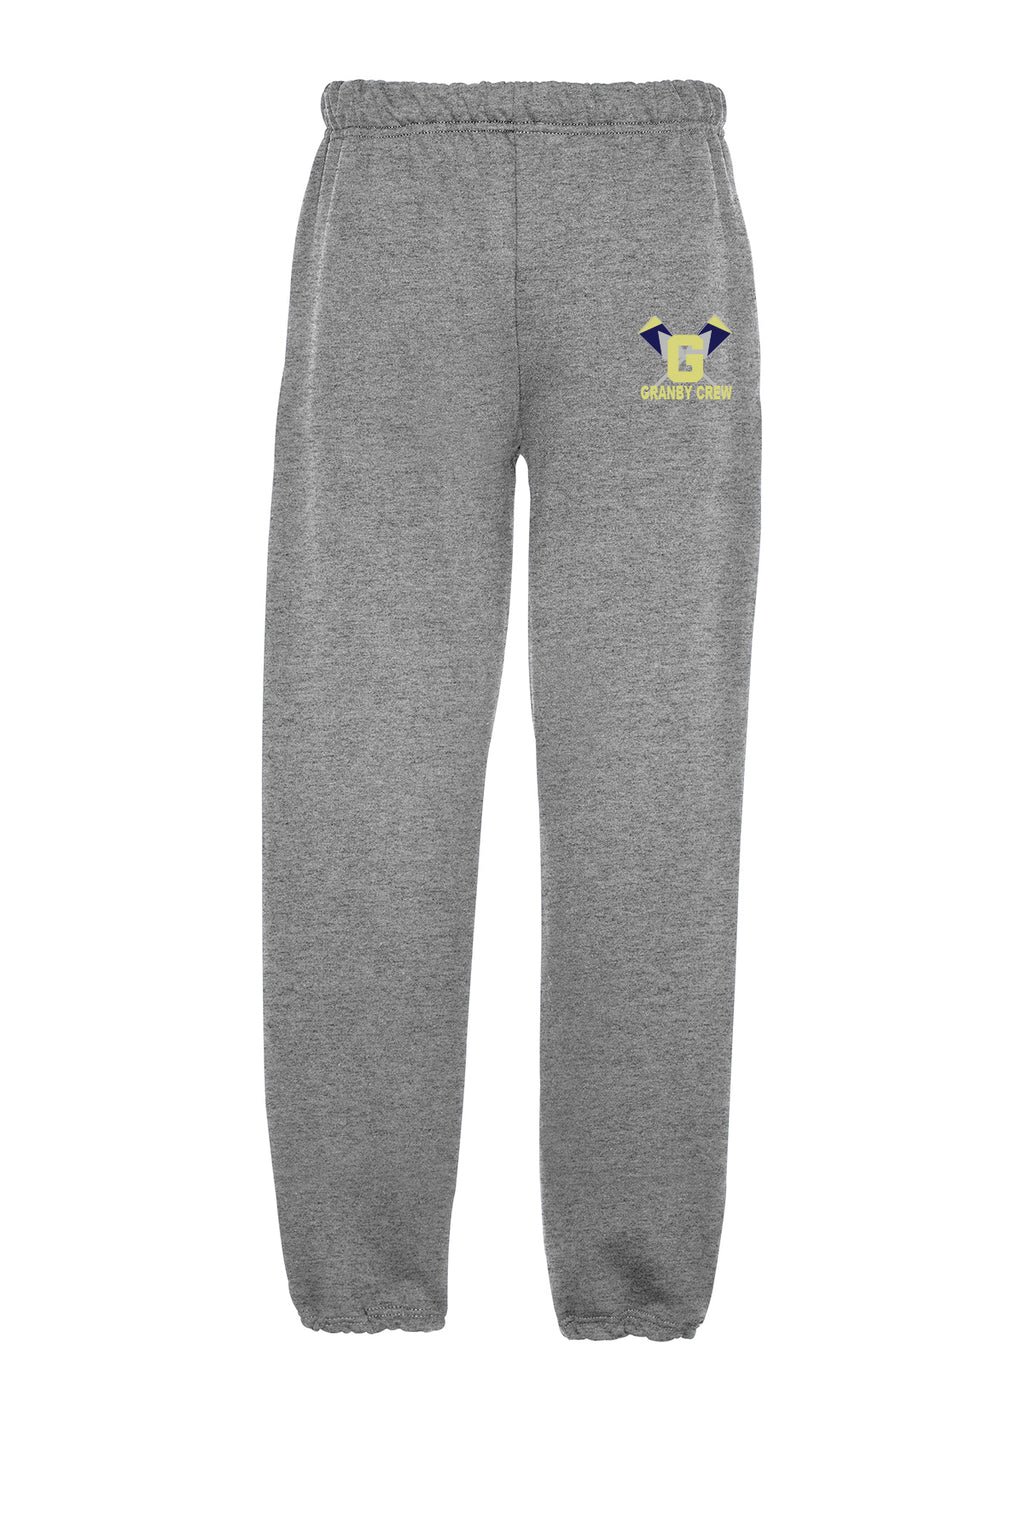 Team Granby Crew Sweatpants